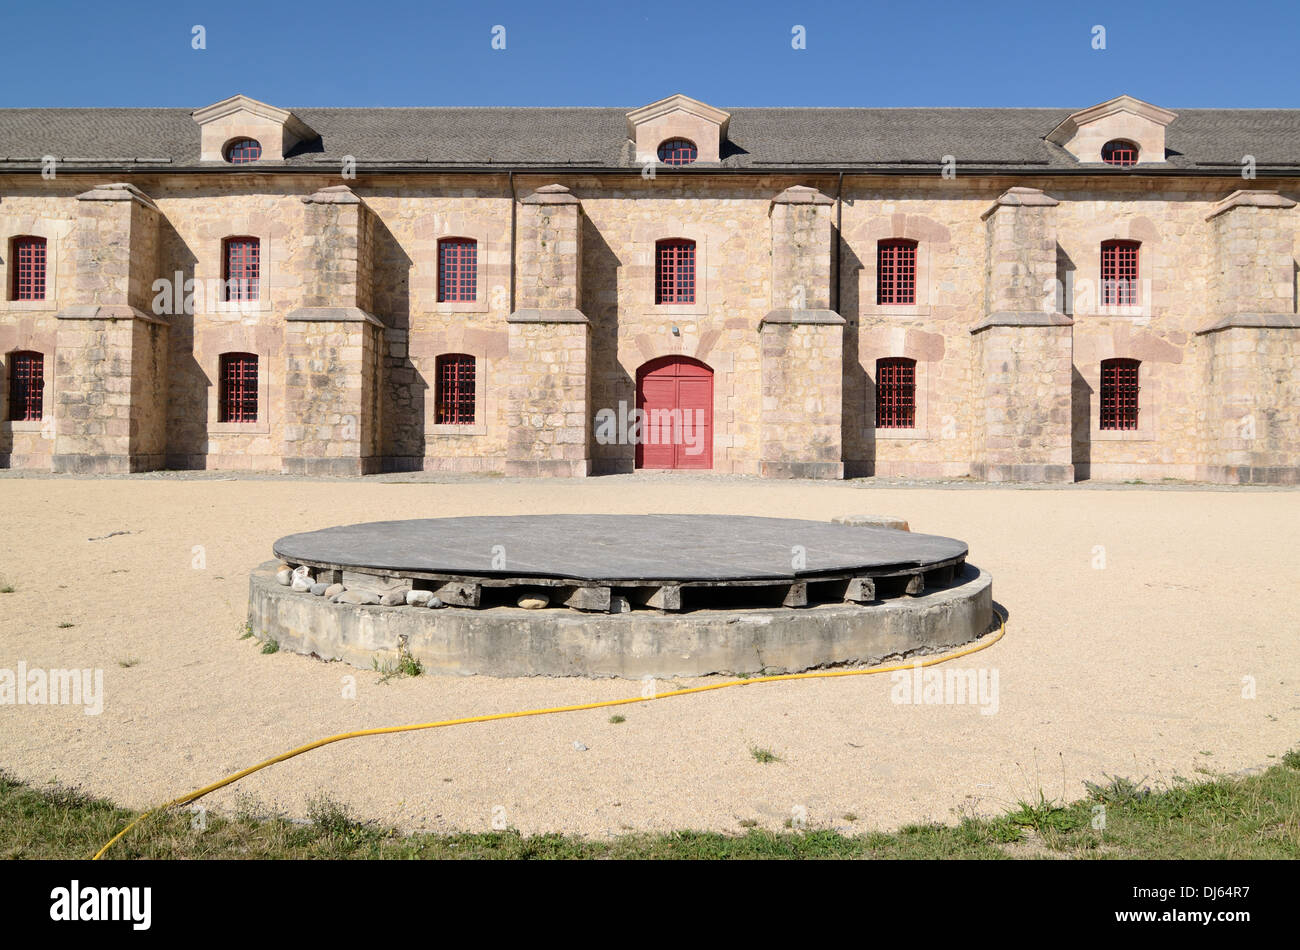 Military Arsenal or Munitions Store by Vauban Mont-Dauphin Hautes-Alpes France - Stock Image